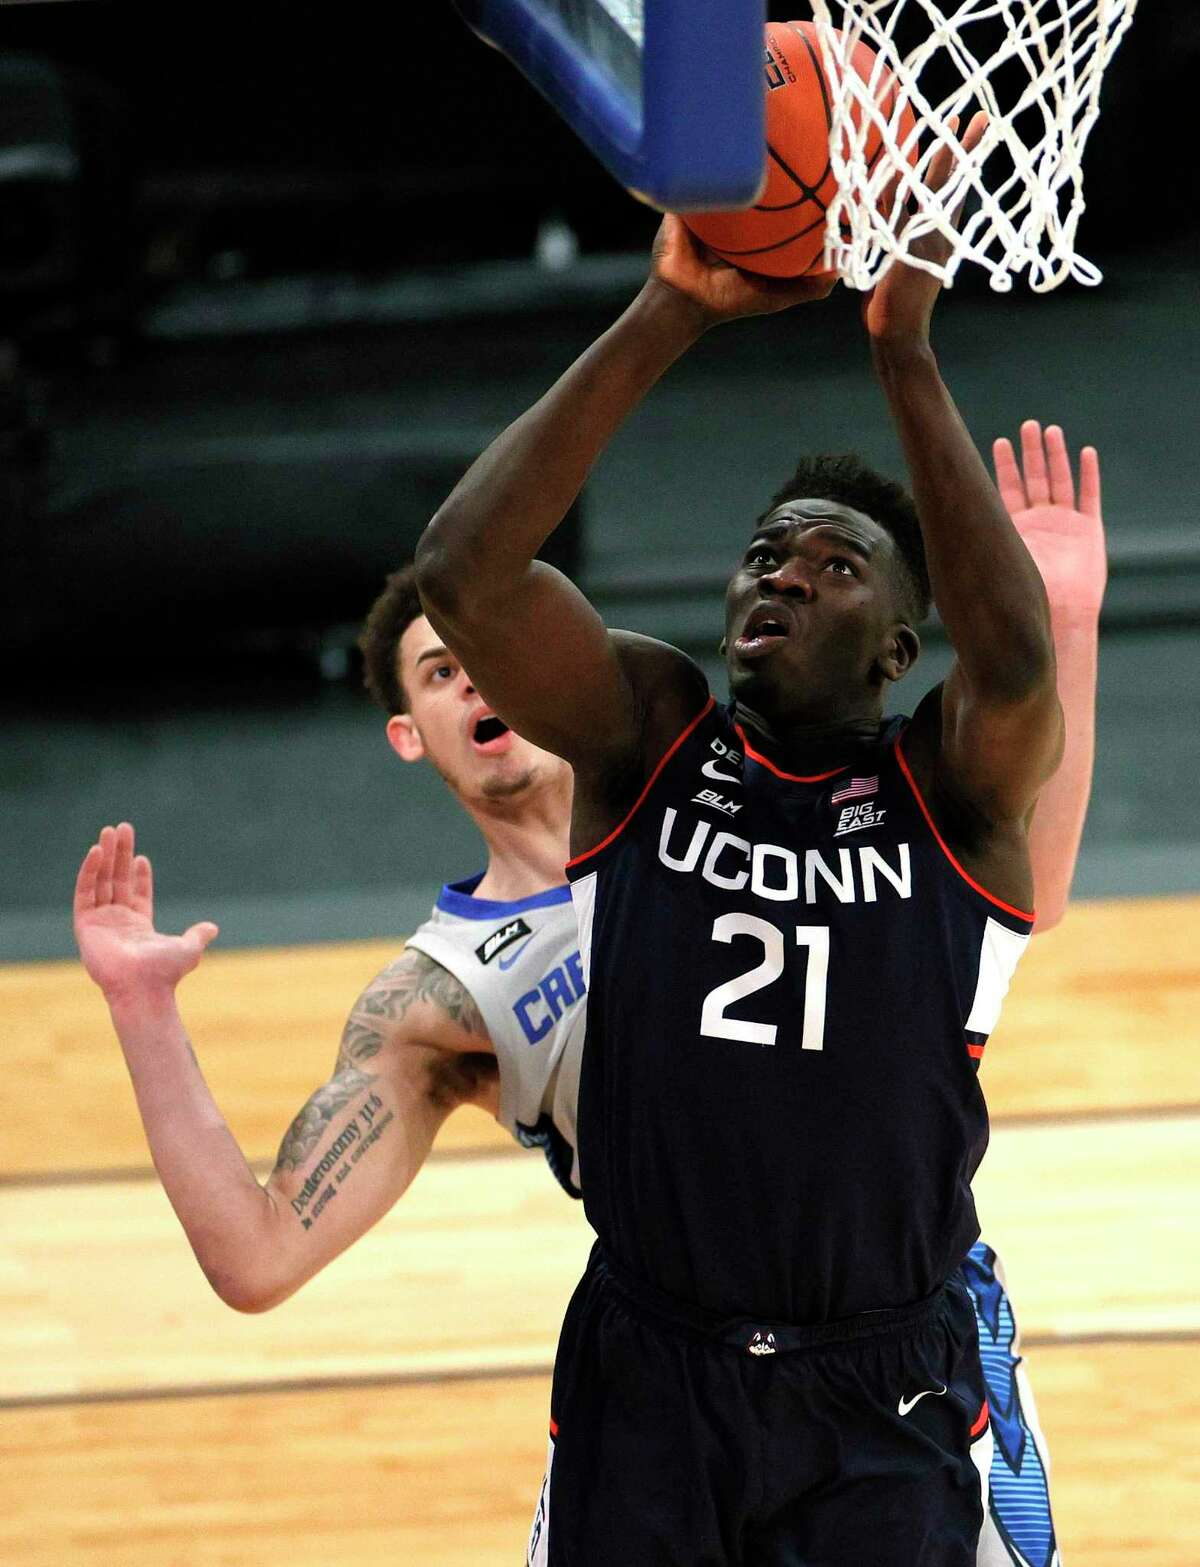 NEW YORK, NEW YORK - MARCH 12: Adama Sanogo # 21 of the Connecticut Huskies goes to the basket in the first half against the Creighton Bluejays in the Big East Tournament Semifinals at Madison Square Garden on March 12, 2021 in New York City.  (Photo by Sarah Stier / Getty Images)